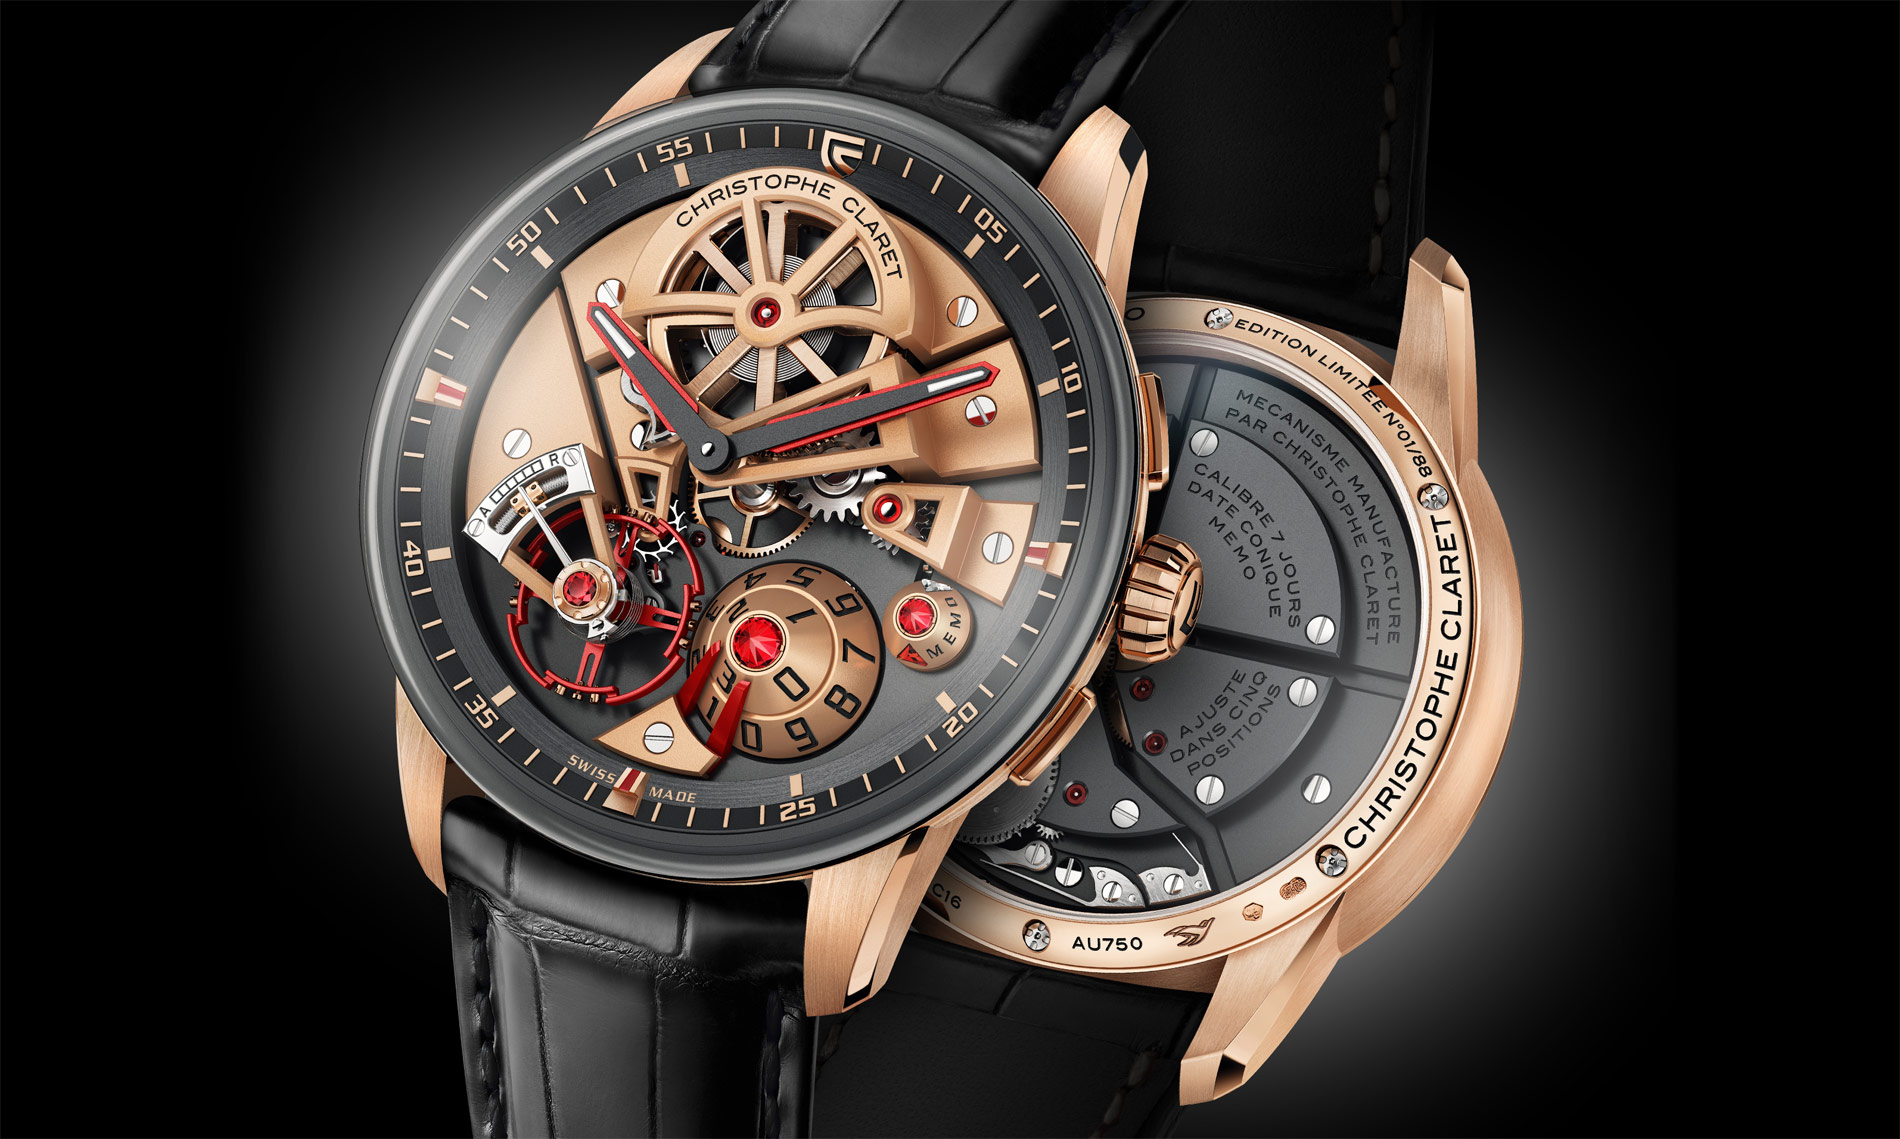 Christophe Claret's Maestro - A New Perspective On Mechanical Art